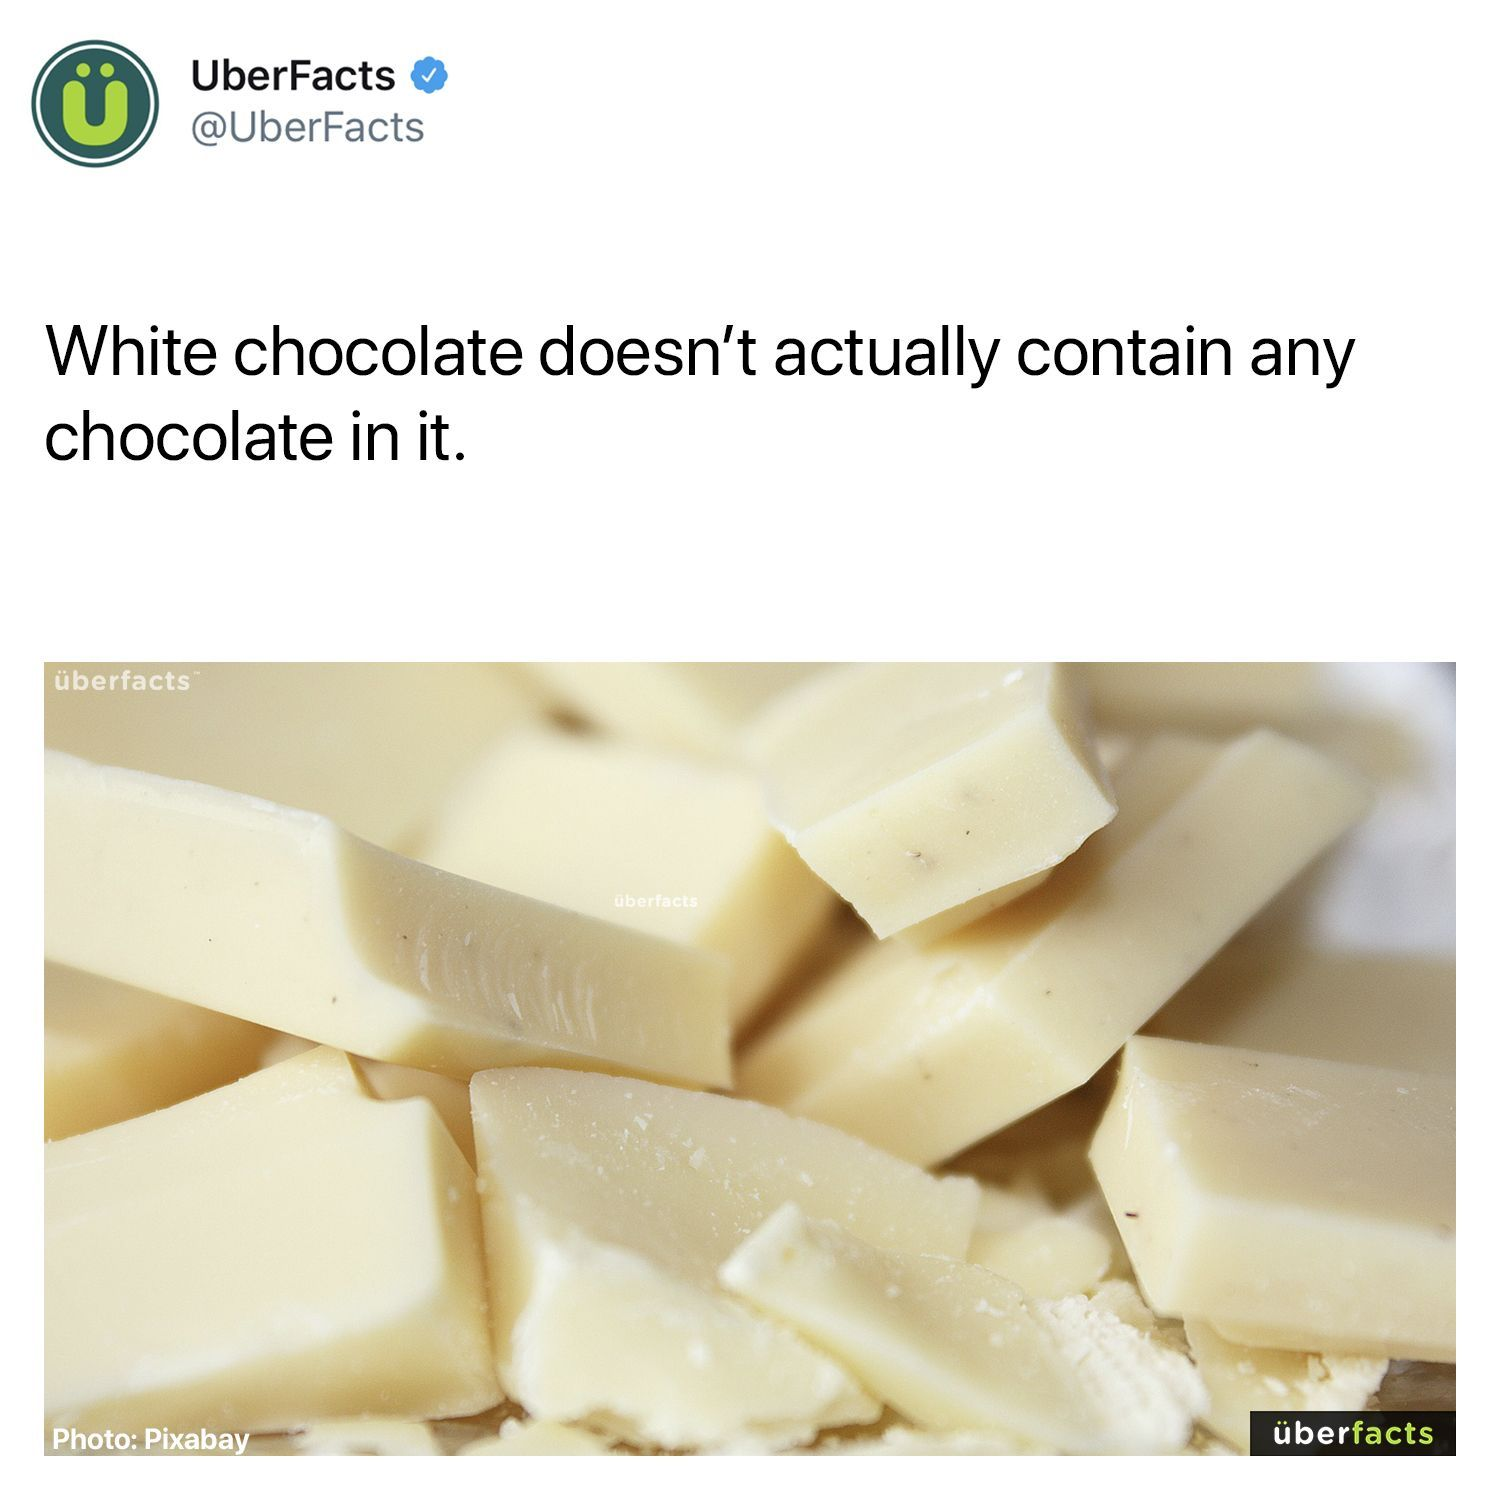 September 22nd Is National White Chocolate Day So Here S A Fact For You Wtf Fun Facts Fun Facts Uber Facts